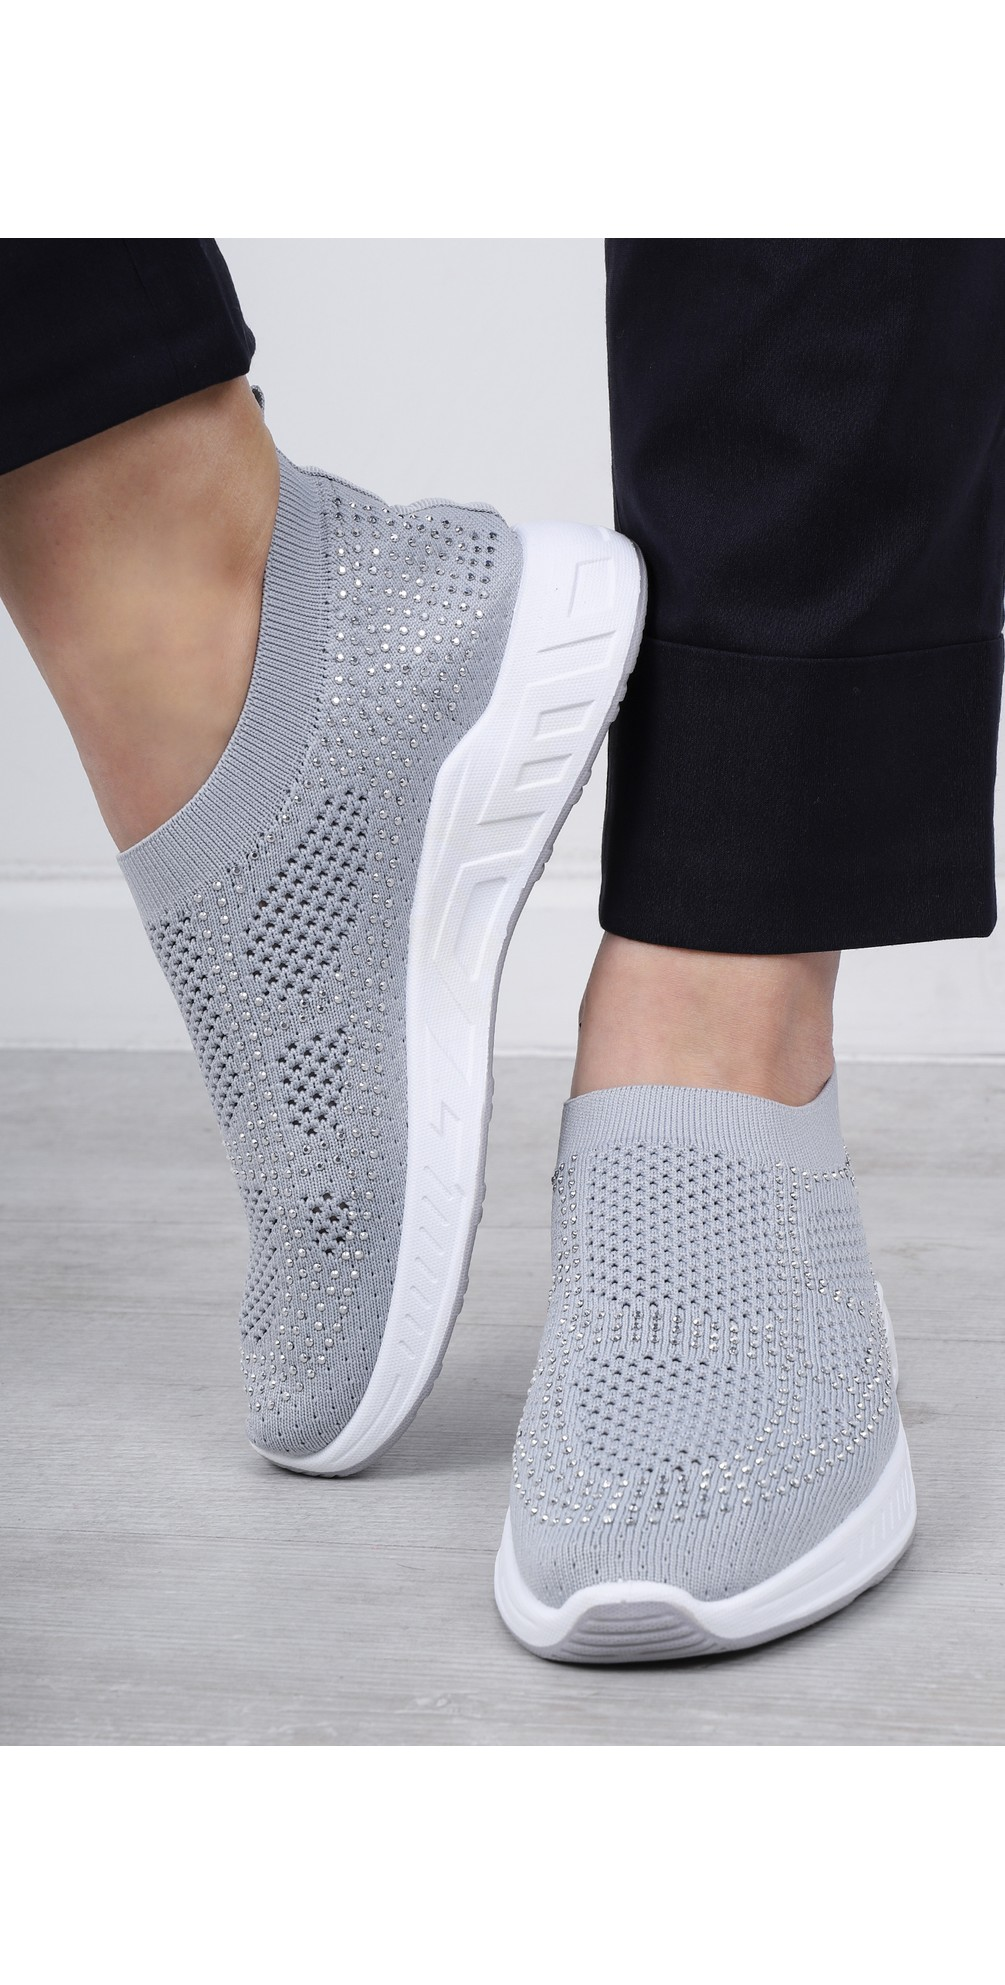 Malmo Knitted Trainer Shoe main image